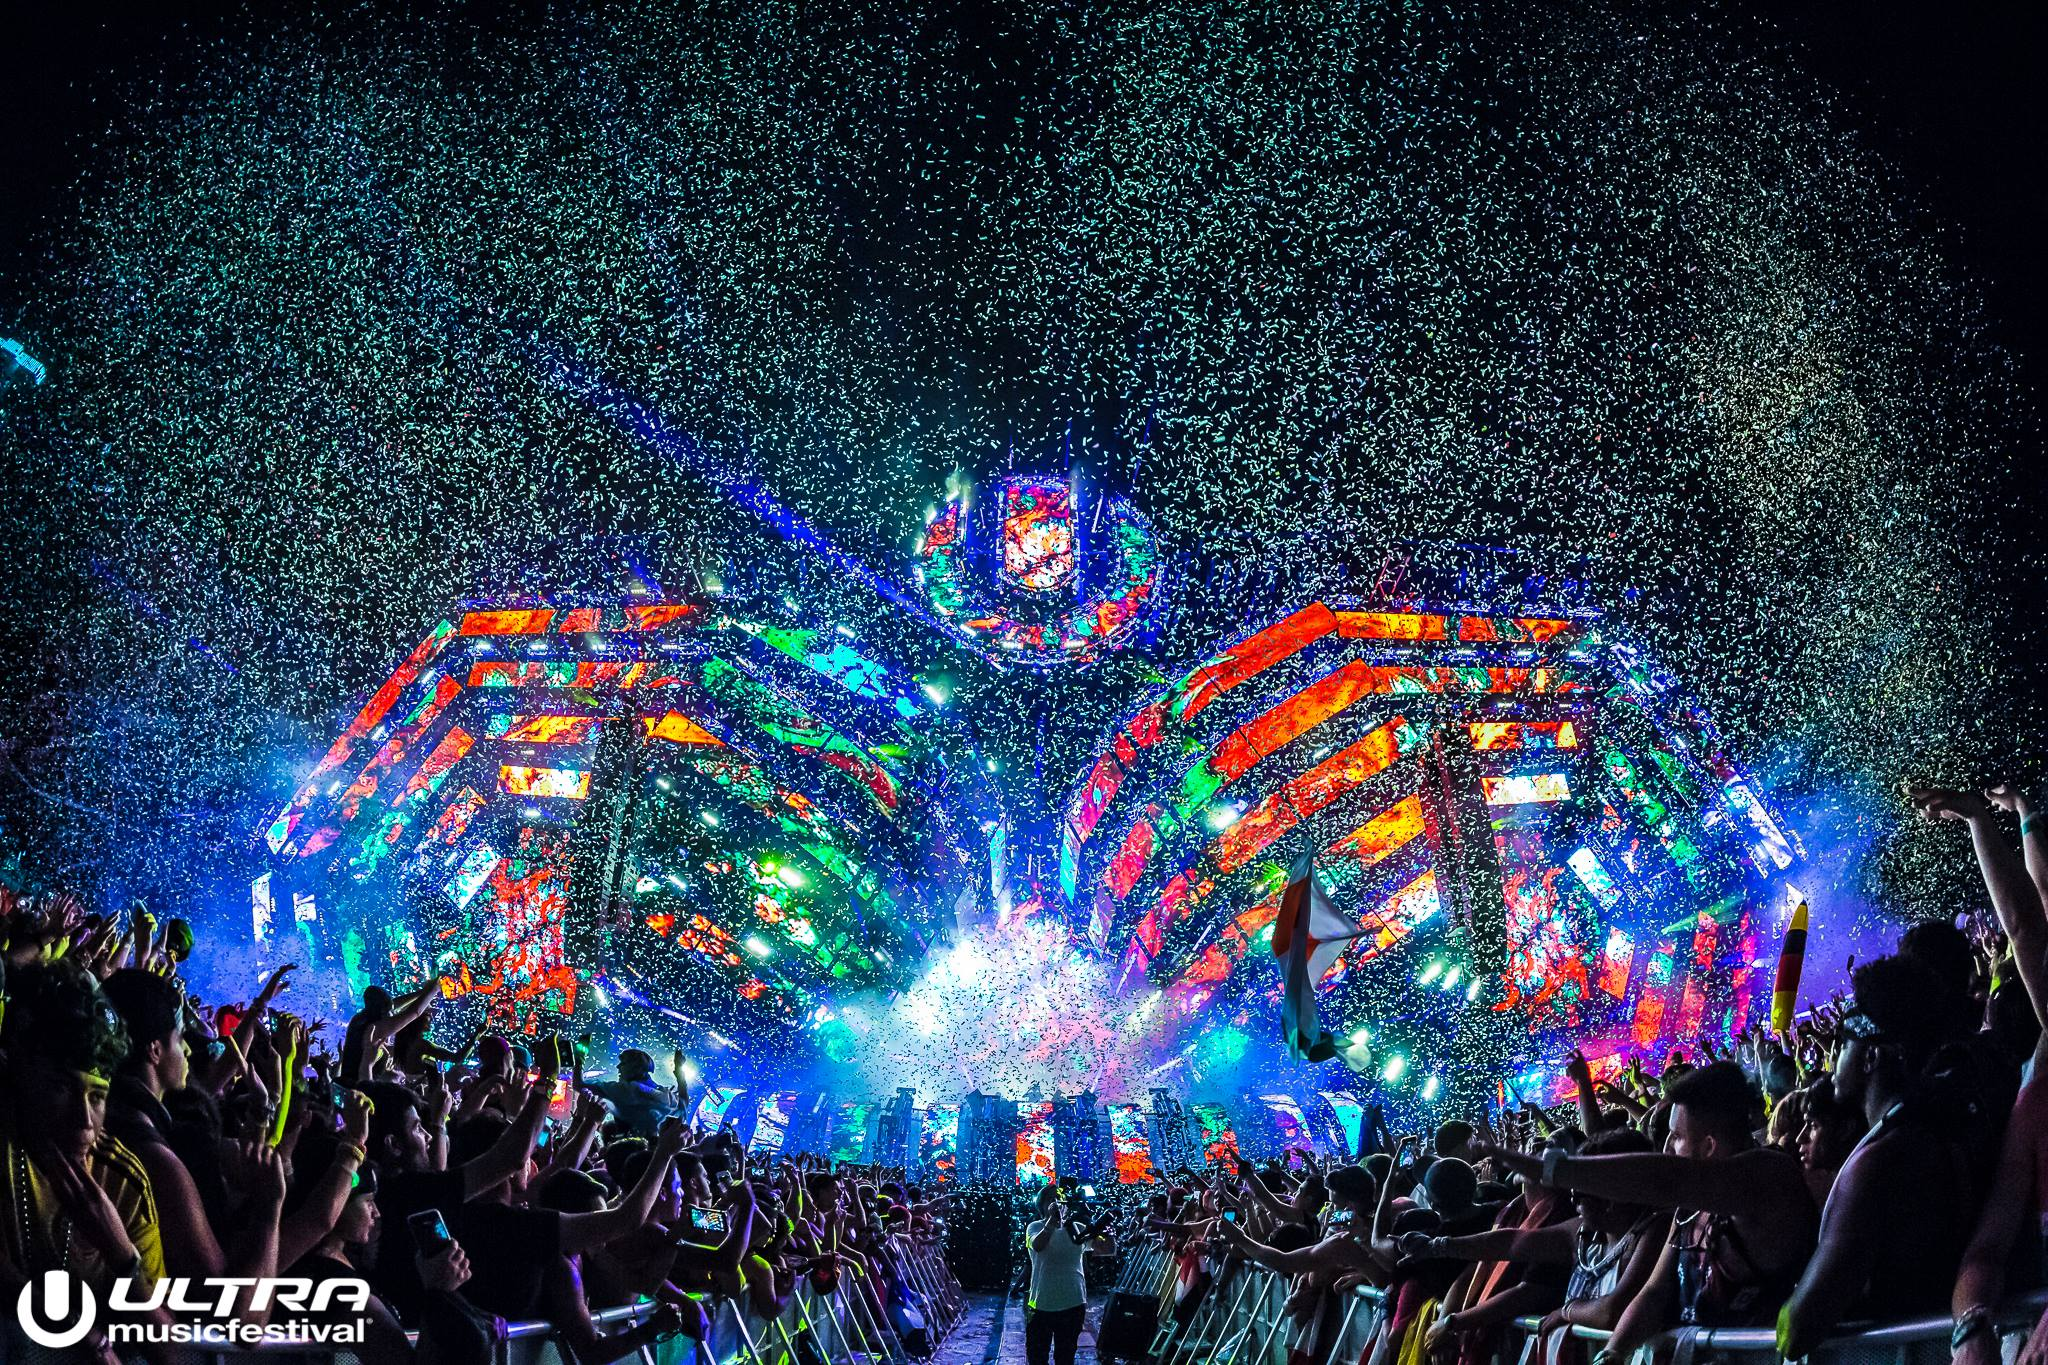 4 Reasons Why We're Excited For Ultra 2017